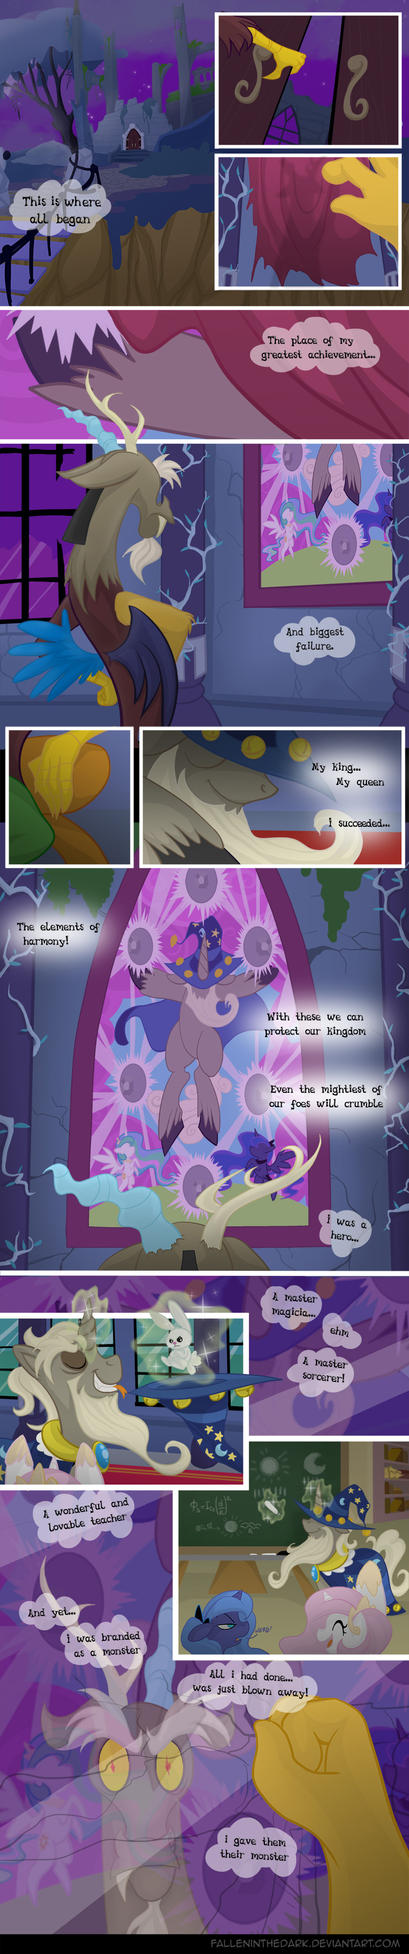 Twists and Turns - Part 10 by FallenInTheDark